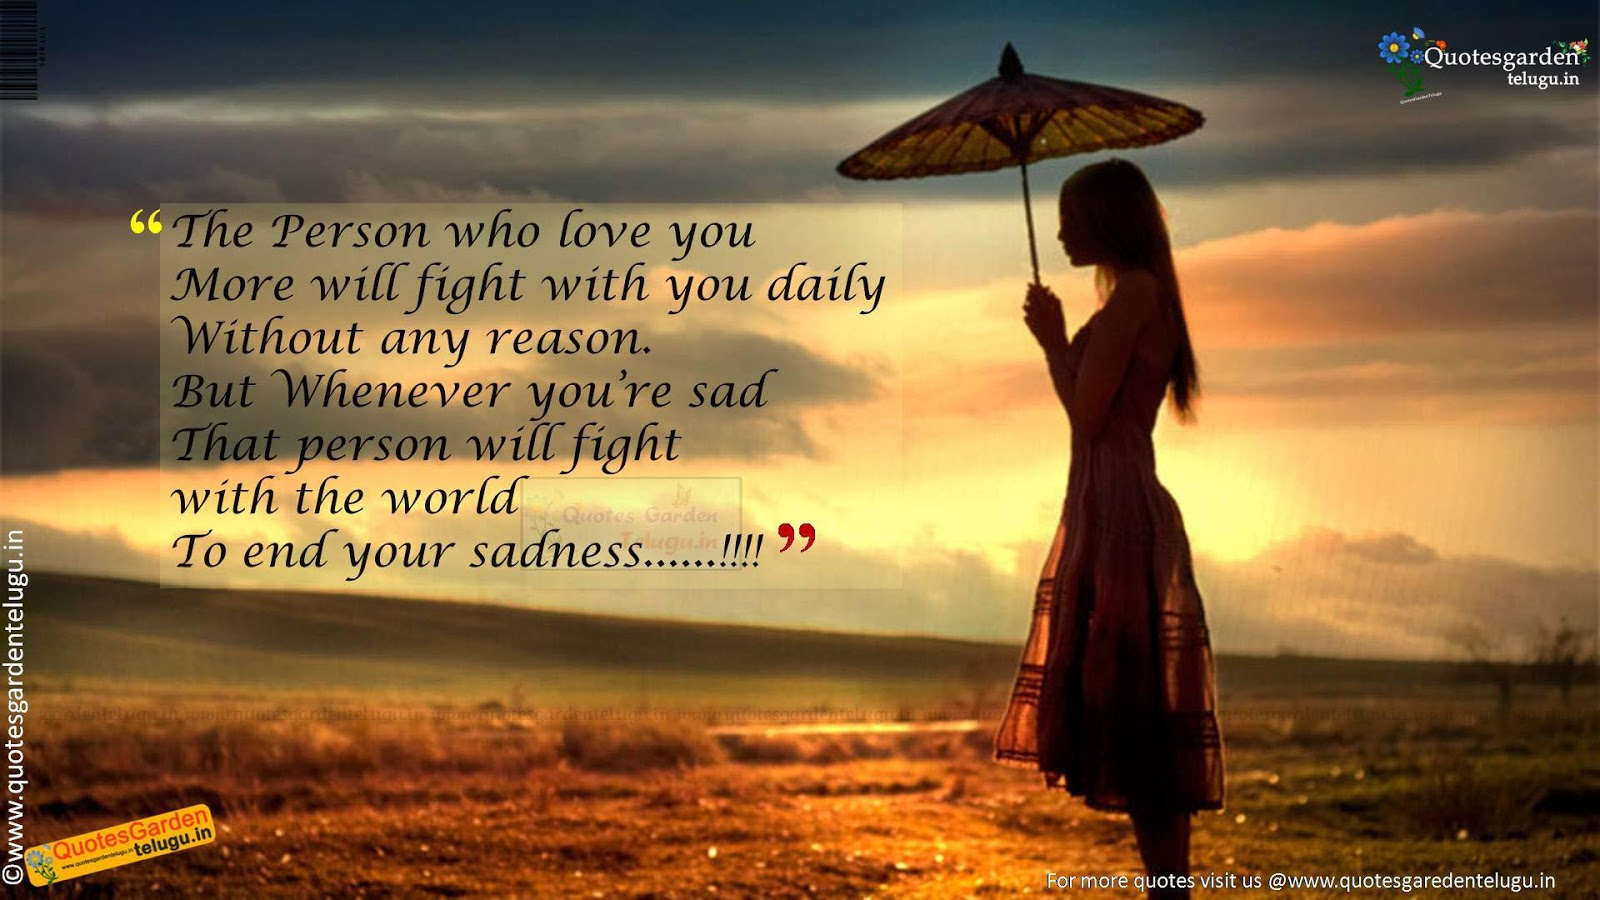 Sad Girl Sitting Alone Hd Wallpapers Best Love Quotes With Hd Wallpapers Quotes Garden Telugu